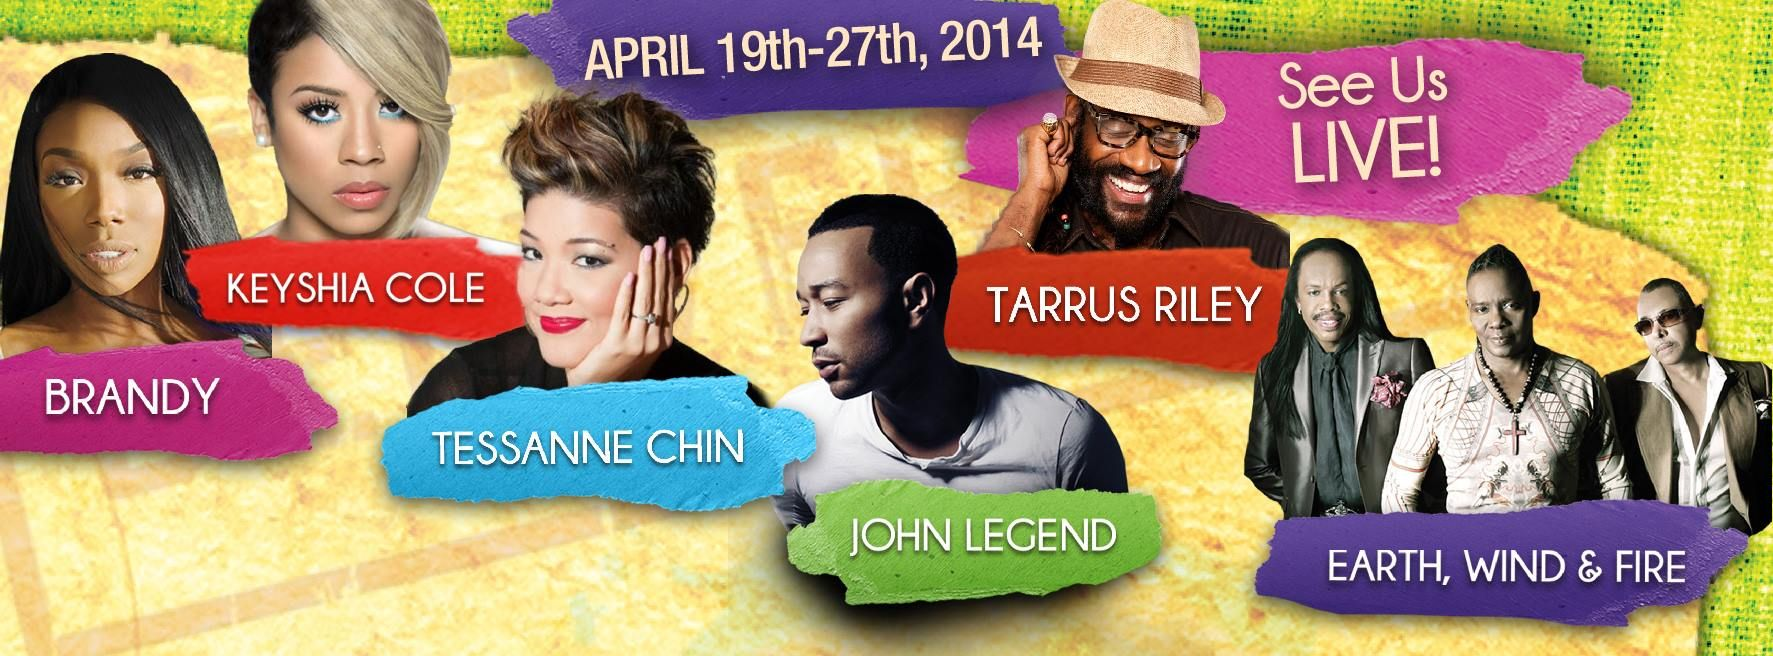 More than 40,000 people will be in Tobago for the Tobago Jazz Experience from April 19 to 27! Are any of our fans part of the 40,000 attending?   Read More: http://www.ctntworld.com/cnews2/index.php?option=com_content&view=article&id=9623%3A40-000-expected-for-tobago-jazz-week&catid=137%3Ac-news&Itemid=707  #Tobago #Trinidad #TrinidadAndTobago #TobagoJazz #TobagoJazzExperience #Jazz